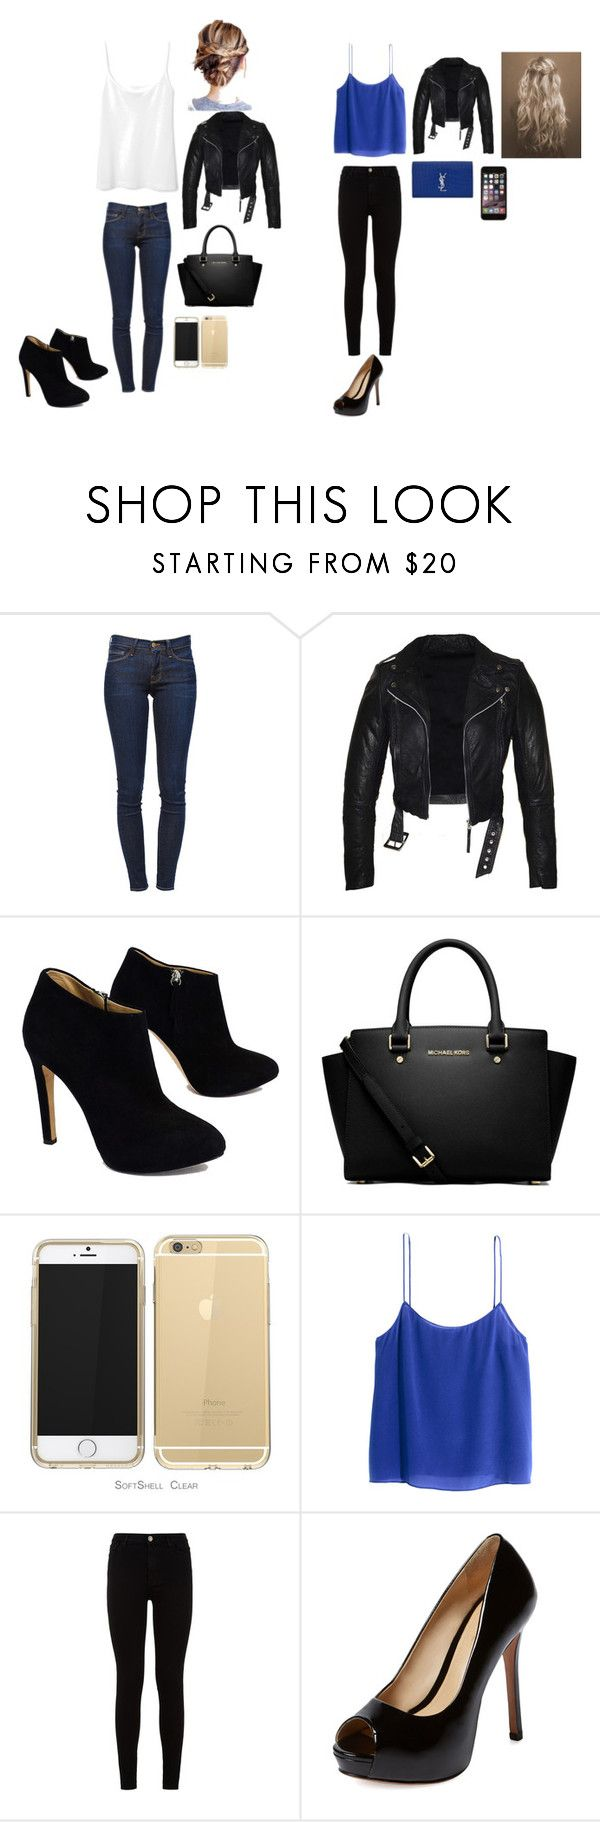 """""""Party and outing outfit"""" by ciani-johnson on Polyvore featuring Frame Denim, Giuseppe Zanotti, MICHAEL Michael Kors, H&M, 7 For All Mankind, Schutz and Yves Saint Laurent"""